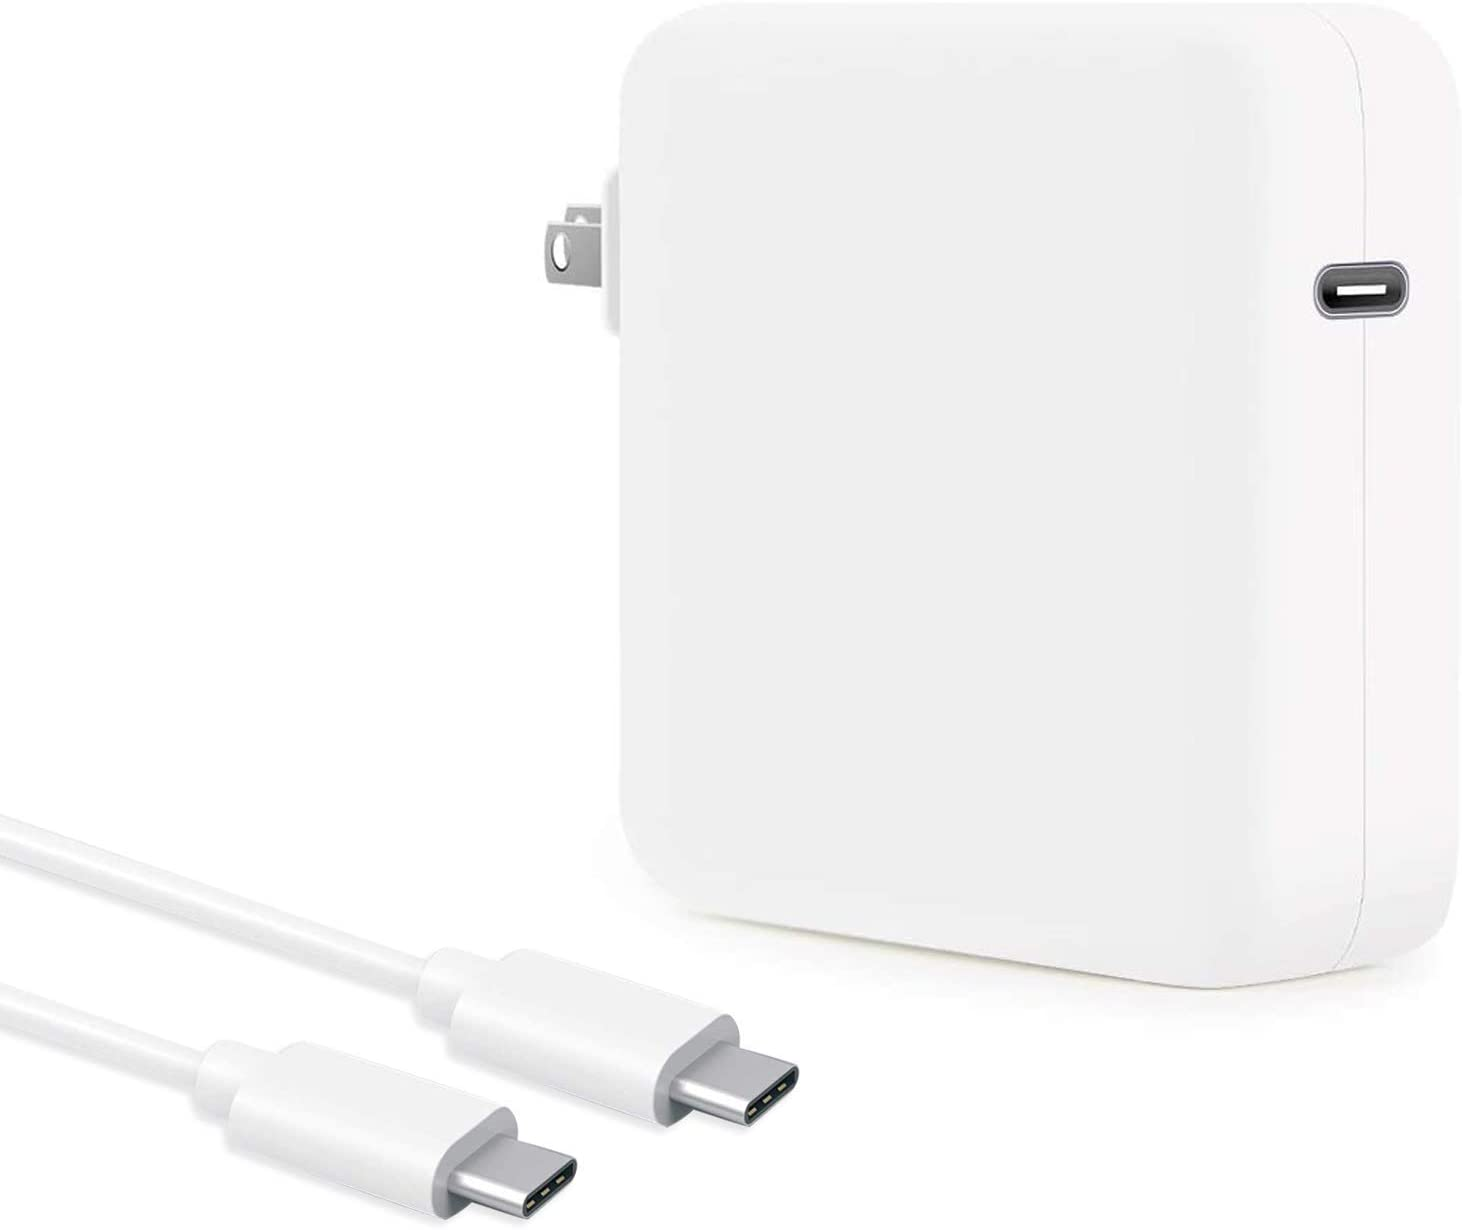 HuanXiLu 96W USB C Charger Power Adapter Compatible for Mac Book Pro 16, 15, 13 inch, for Mac Book Air 13 inch 2020/2019/2018, Included USB C Charge Cable 6.6ft, Compatible with All USB C Device